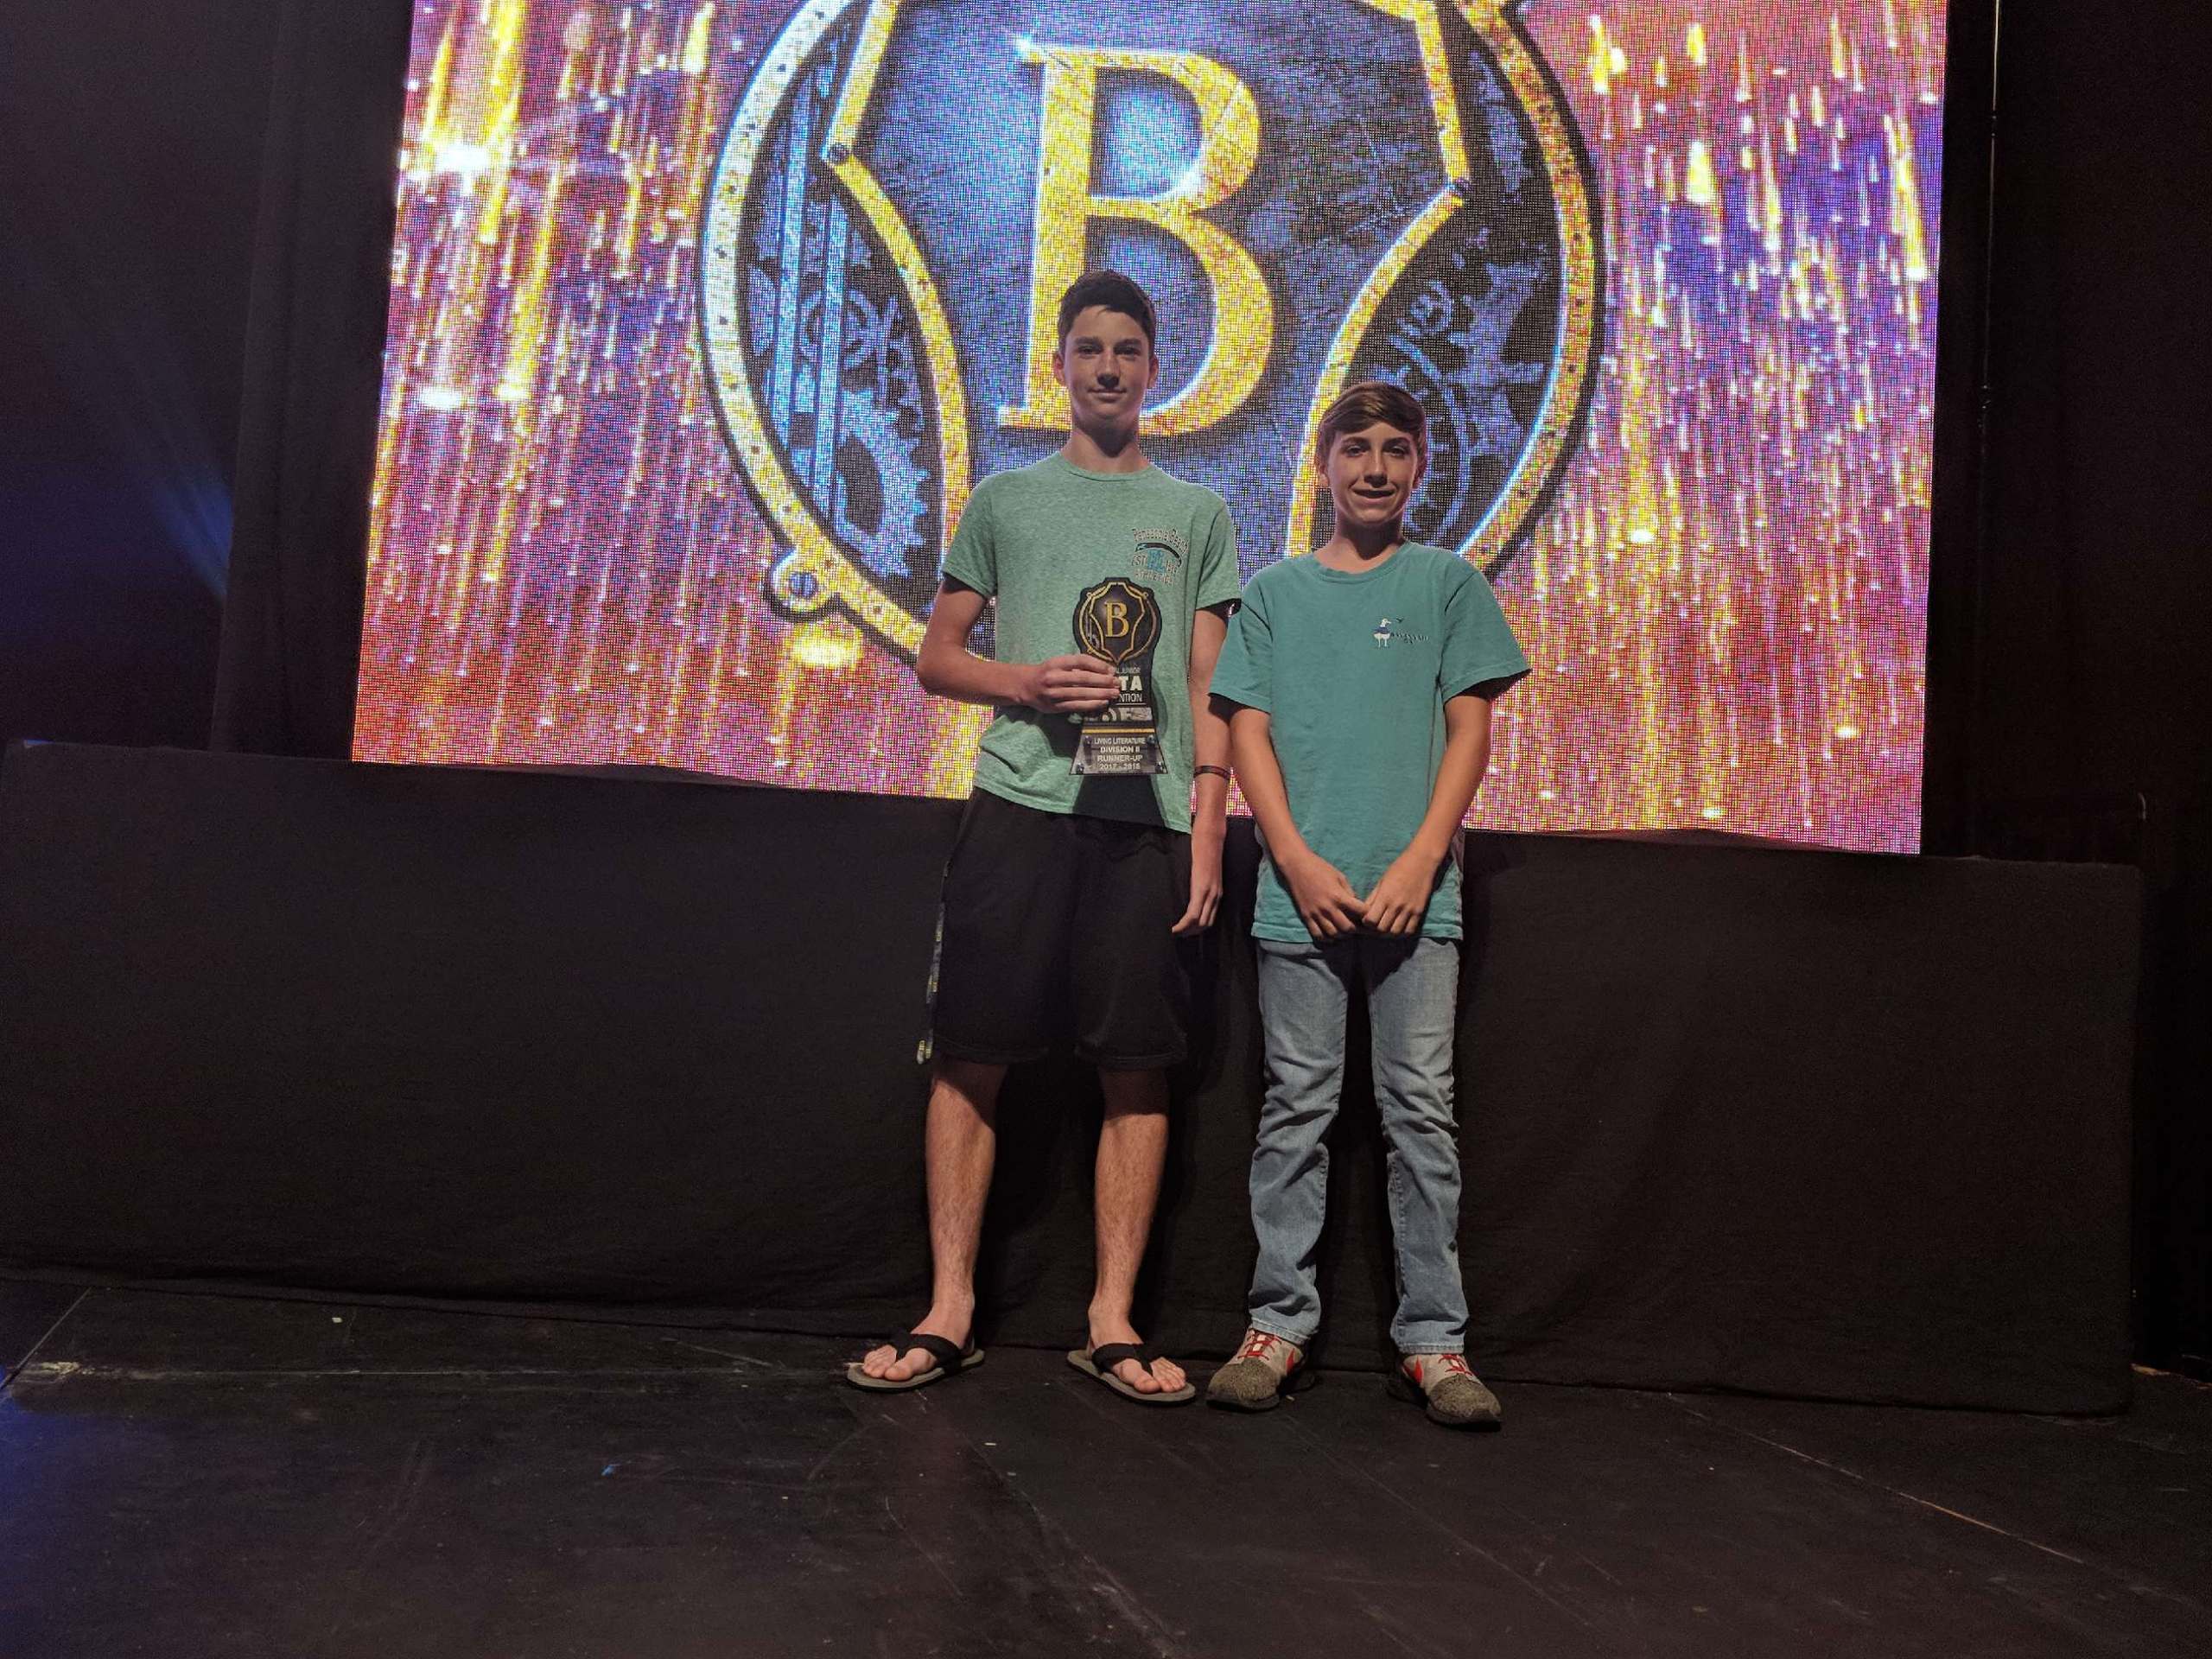 Kody & Zach Accept Award ... or the Living Literature Team placing 2nd in the 2018 National Junior Beta Club Academic Convention in Savannah, Georgia.  (06/15)